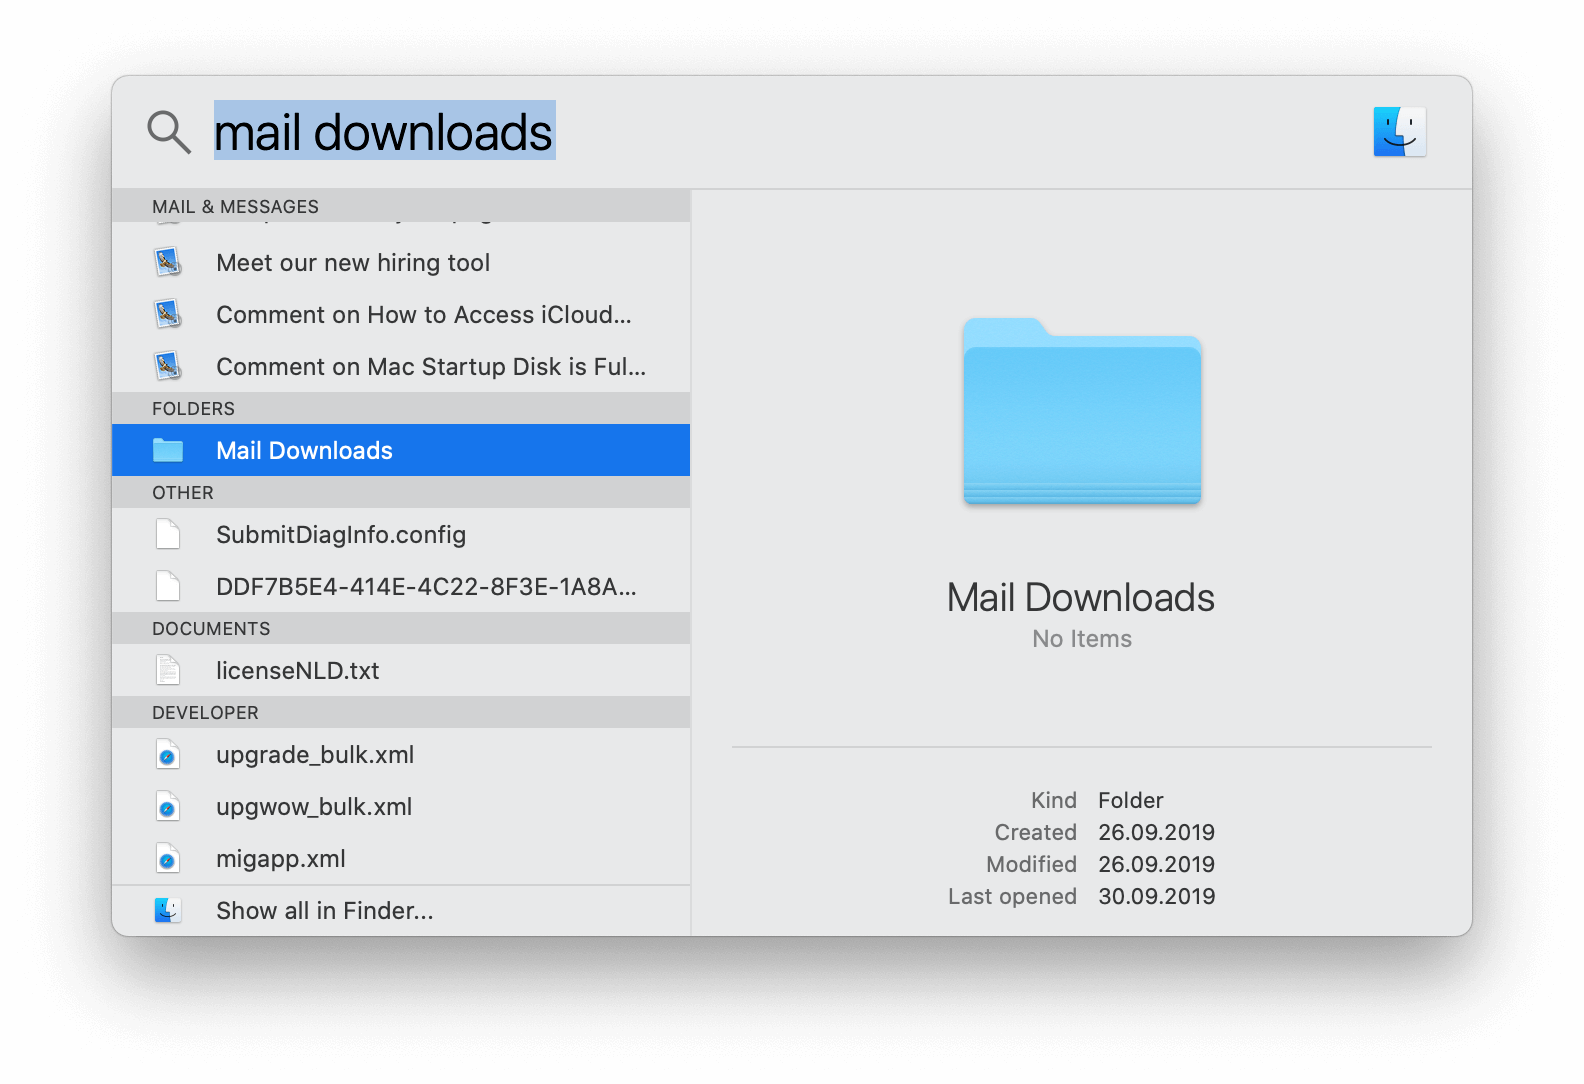 Delete mail downloads on mac